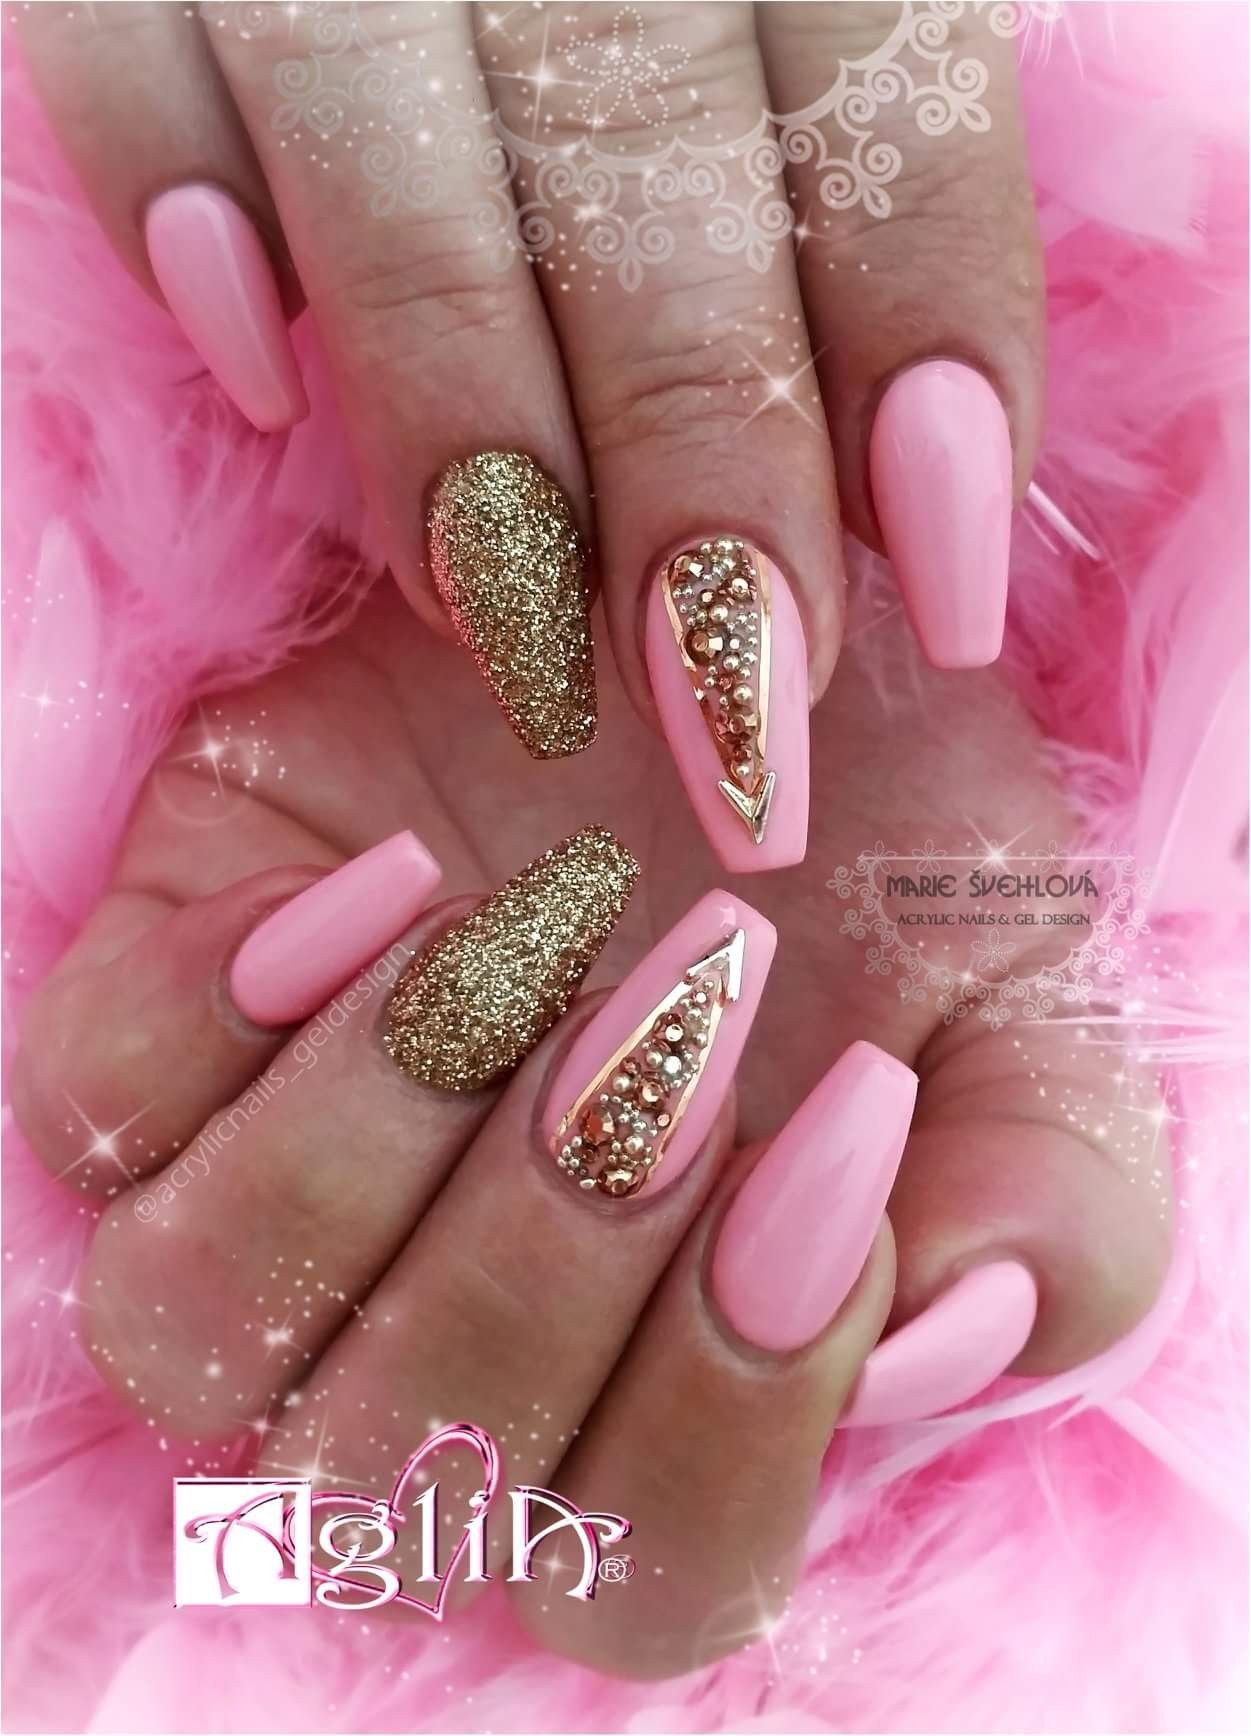 Pin by Gurjeet on nail accessories in 2019 | Nails, Acrylic Nails ...